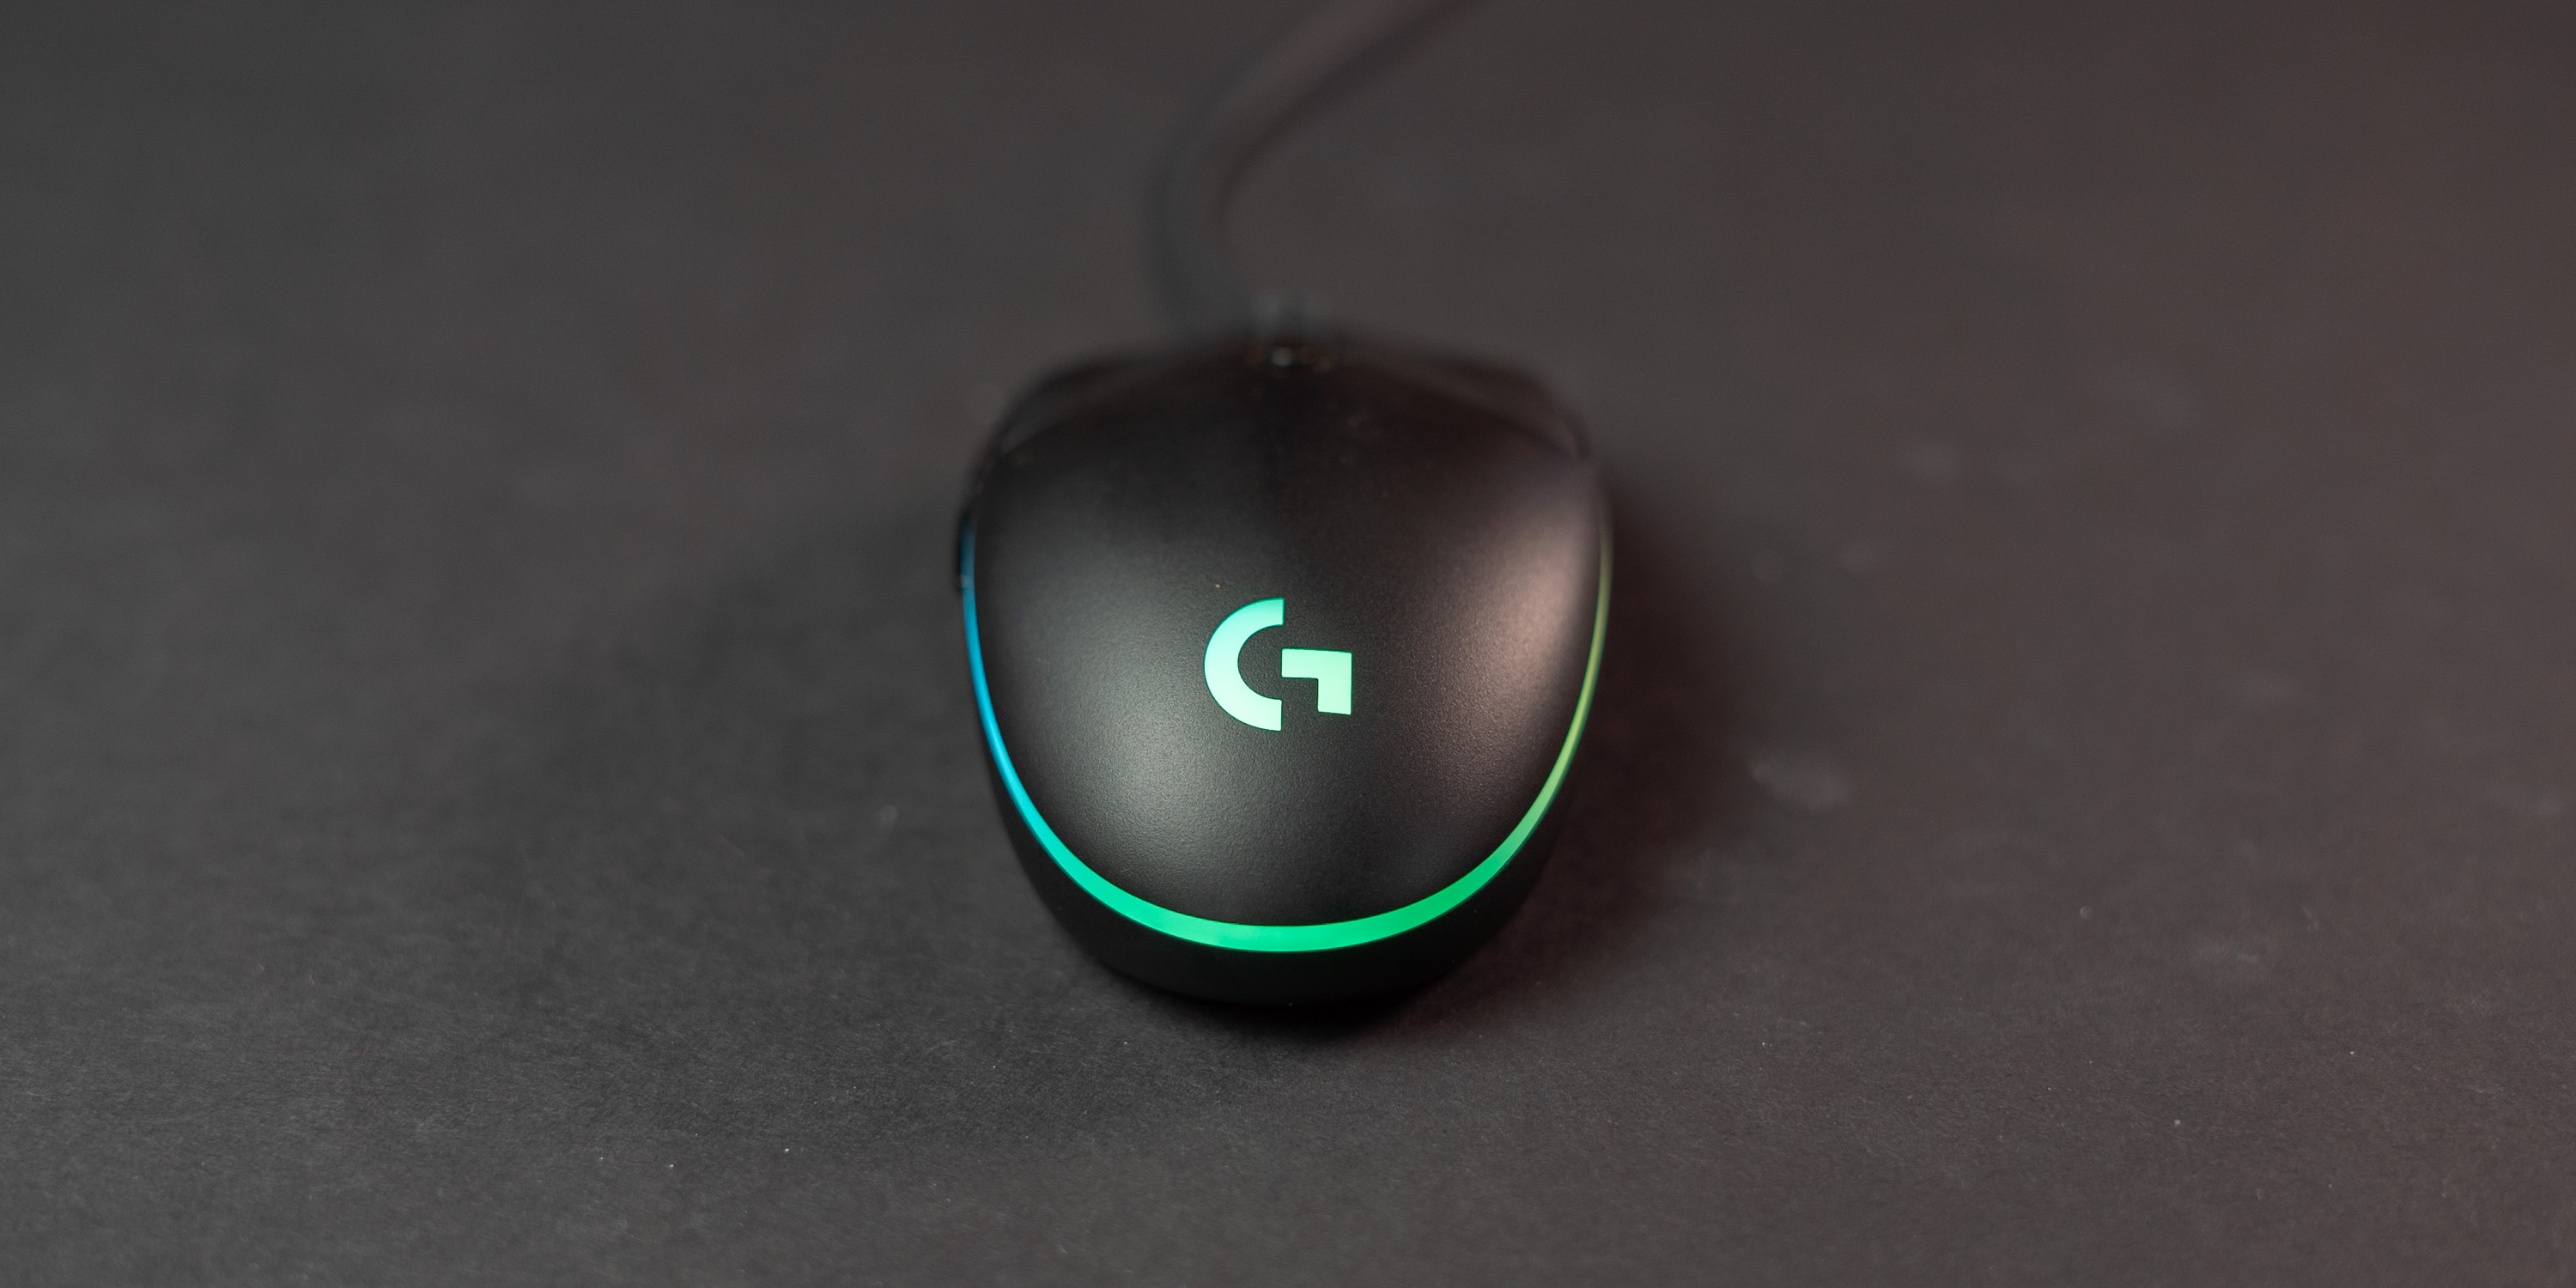 RGB Lighting on the Logitech G203 Lightsync